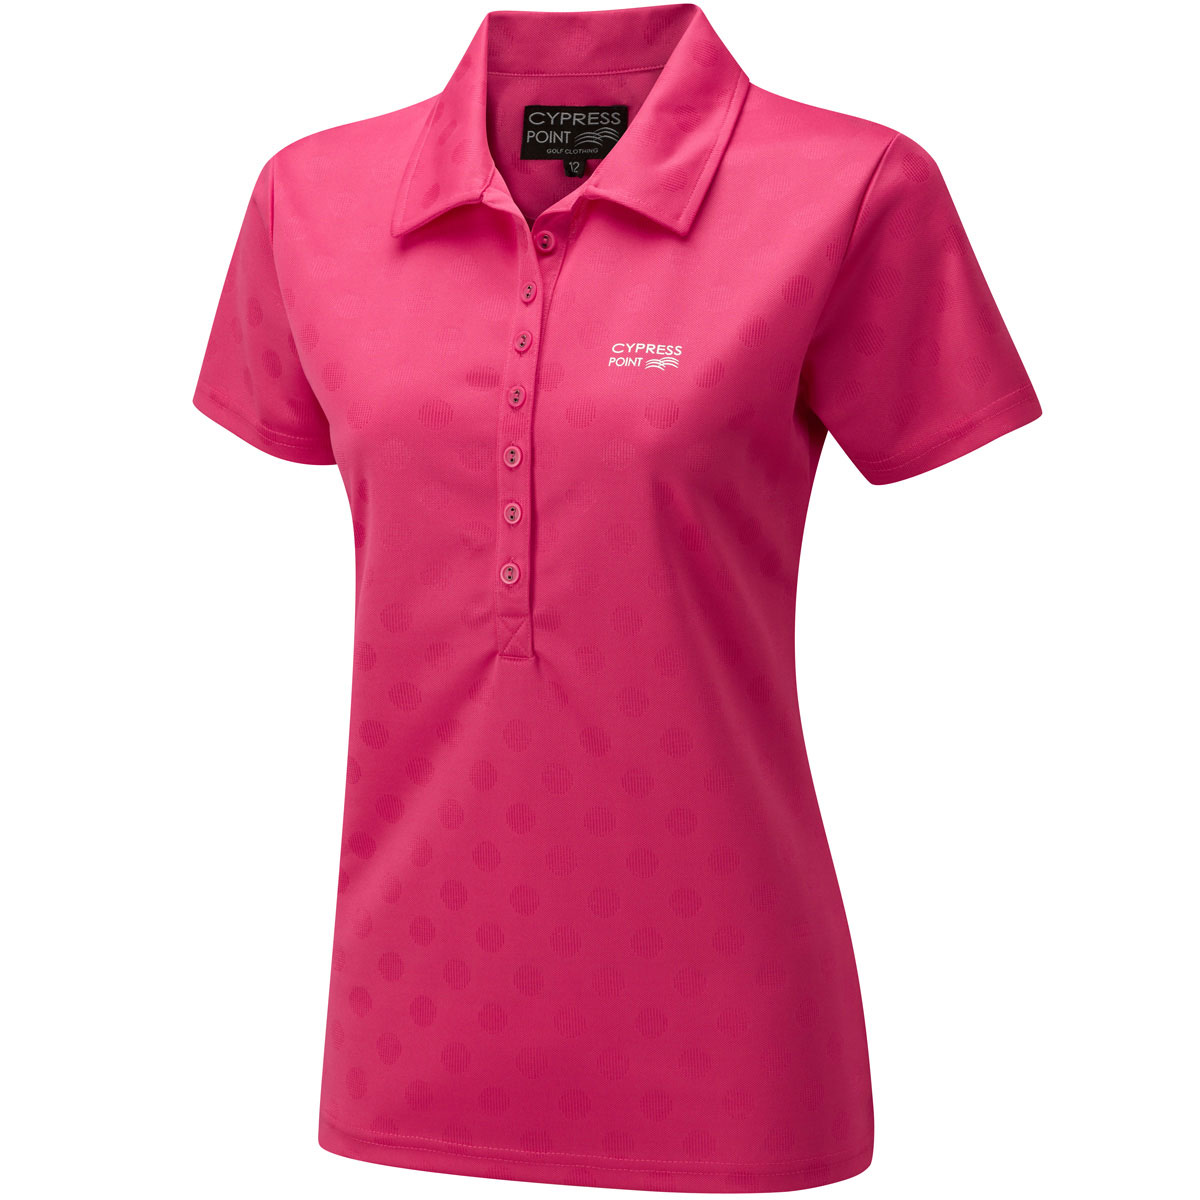 cypress point 2014 ladies cplts430 spot golf polo shirt ebay